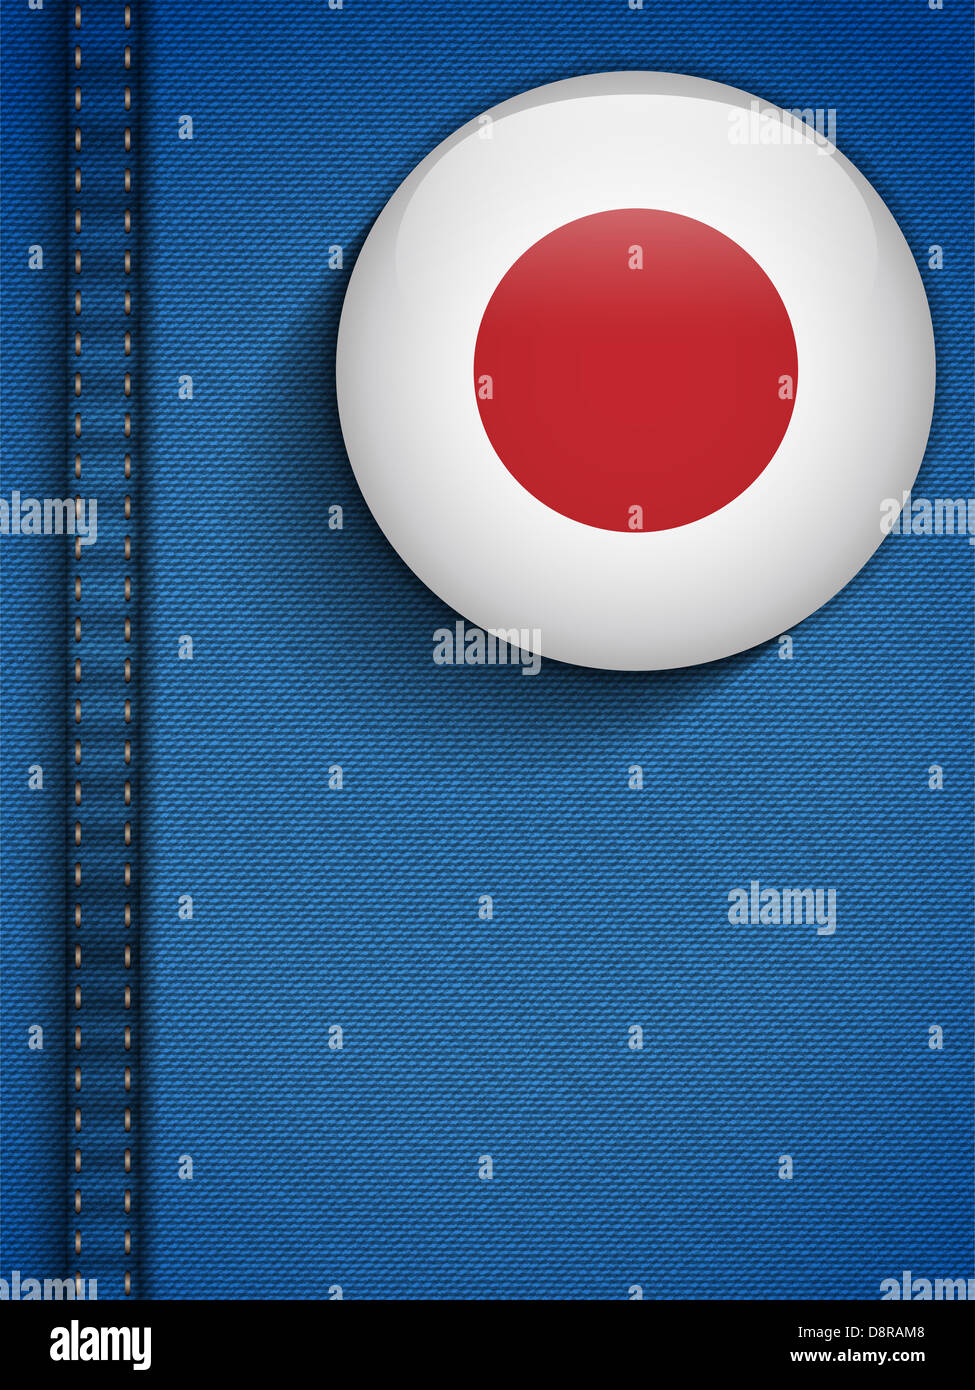 Vector - Japan Flag Button in Jeans Pocket Stock Photo